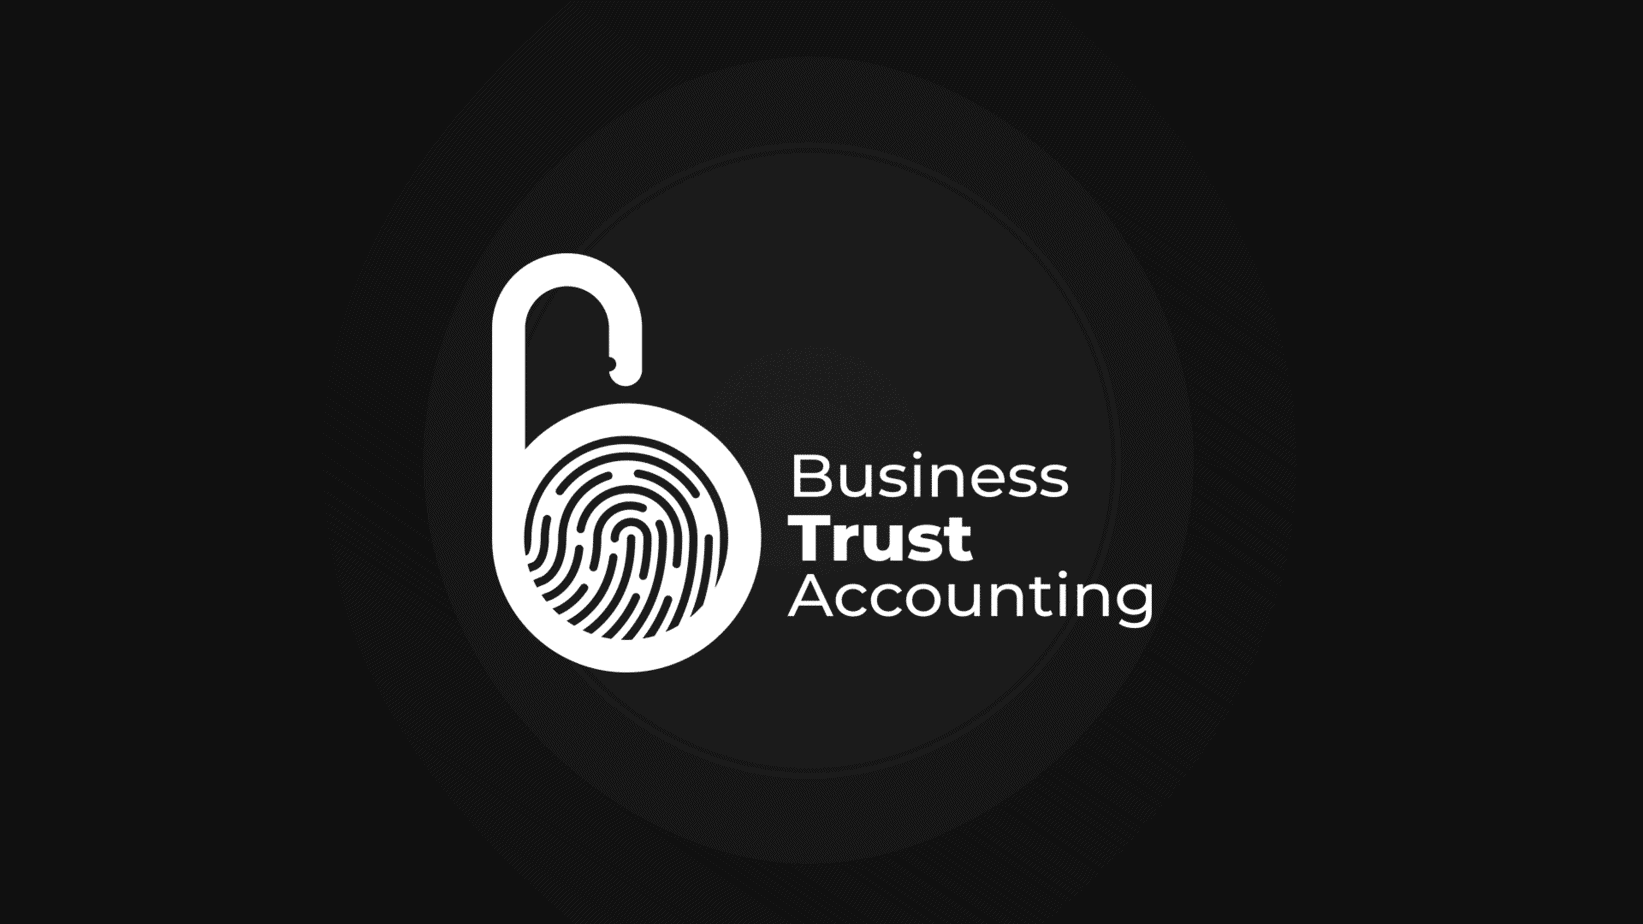 business trust accounting logo design